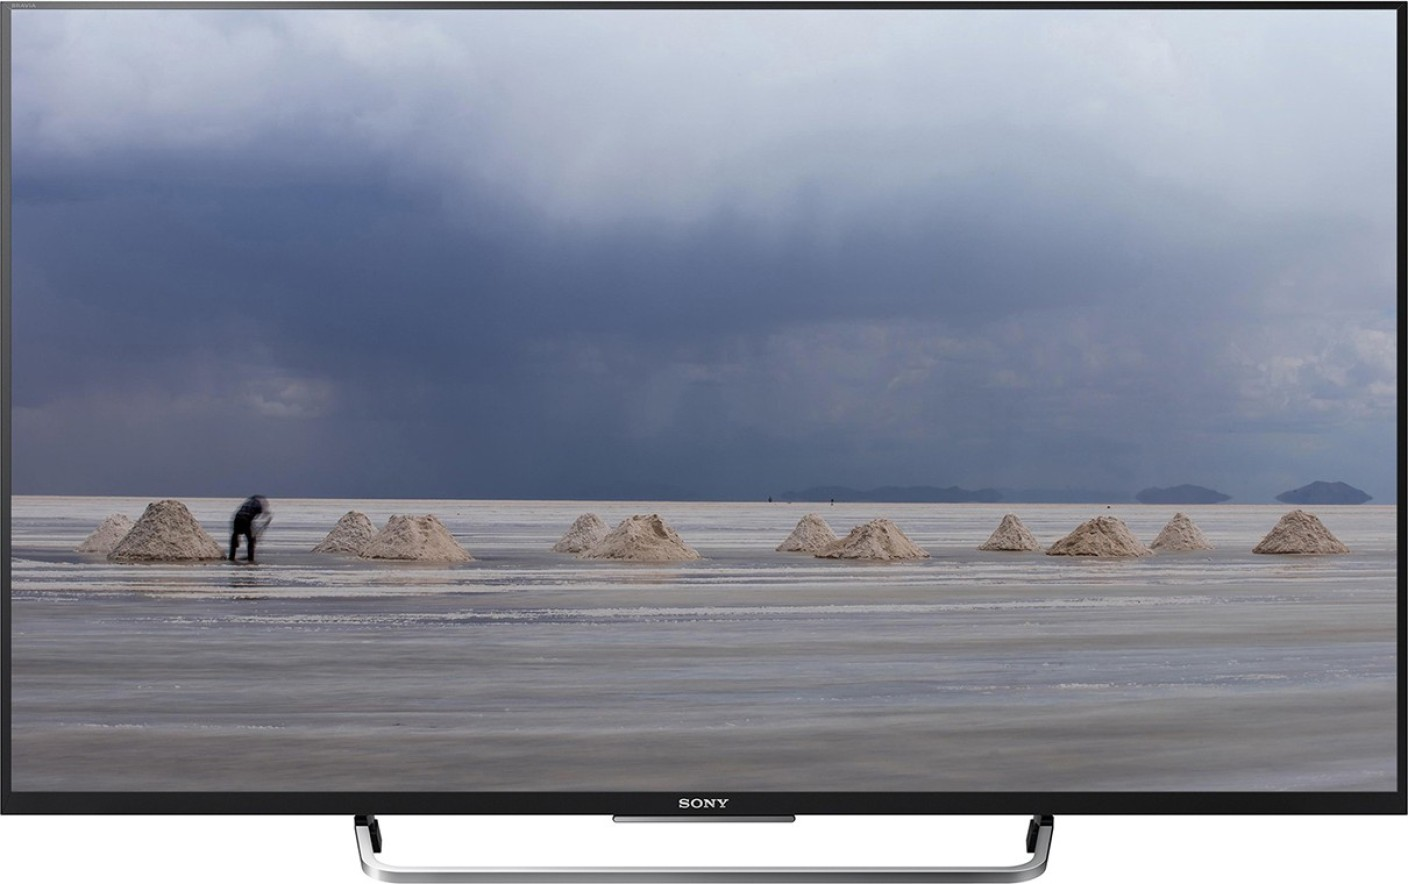 sony bravia 108cm 43 inch full hd led smart tv online at best prices in india. Black Bedroom Furniture Sets. Home Design Ideas